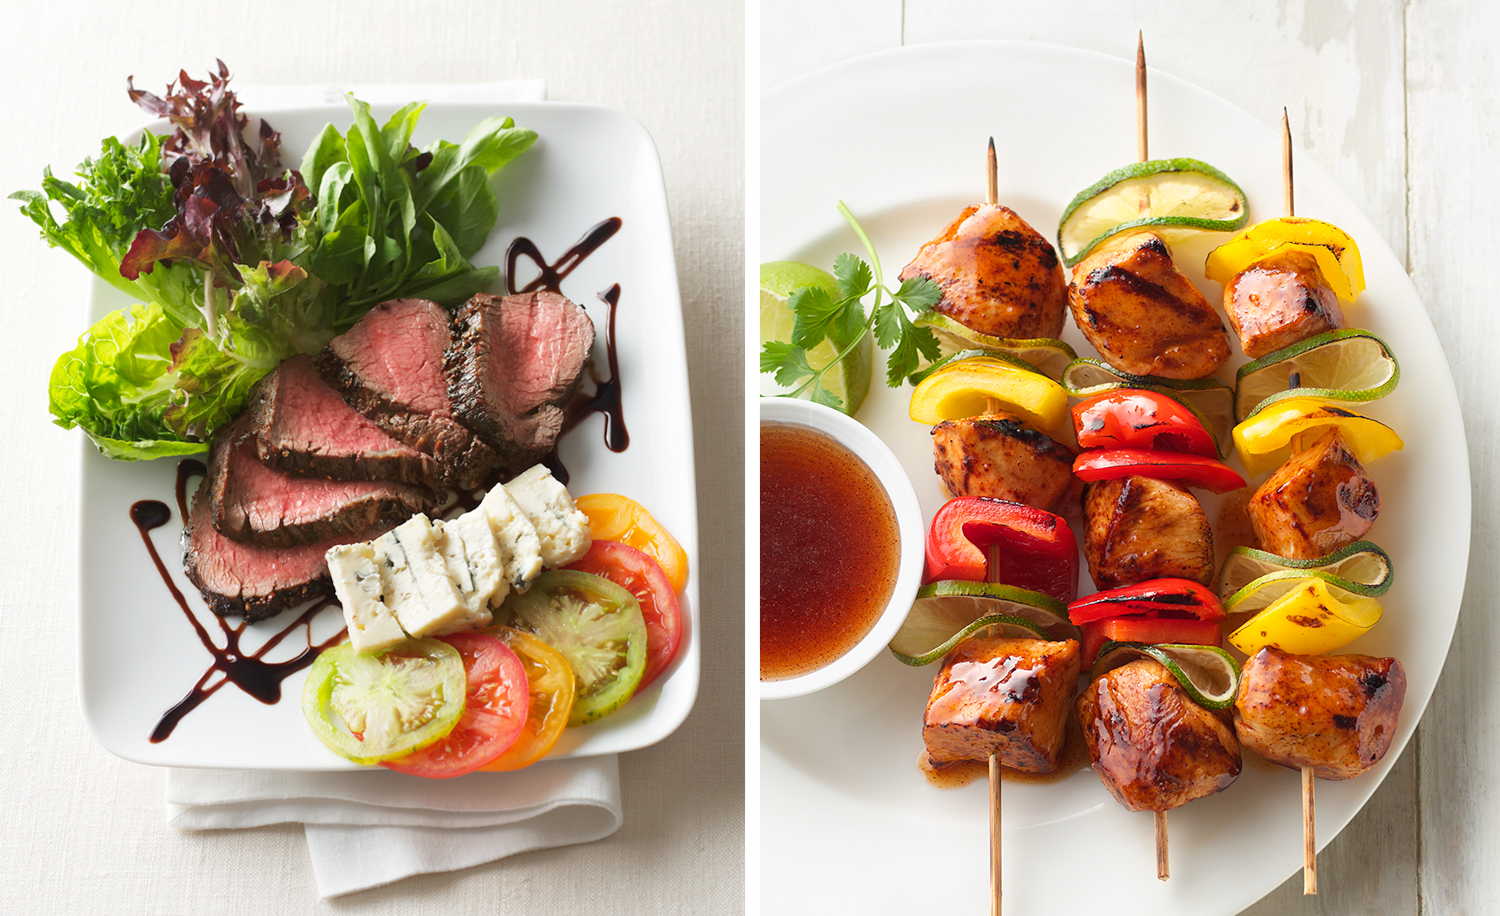 Peppercorn Steak Salad and Chicken Kebabs | Tony Kubat Photograp